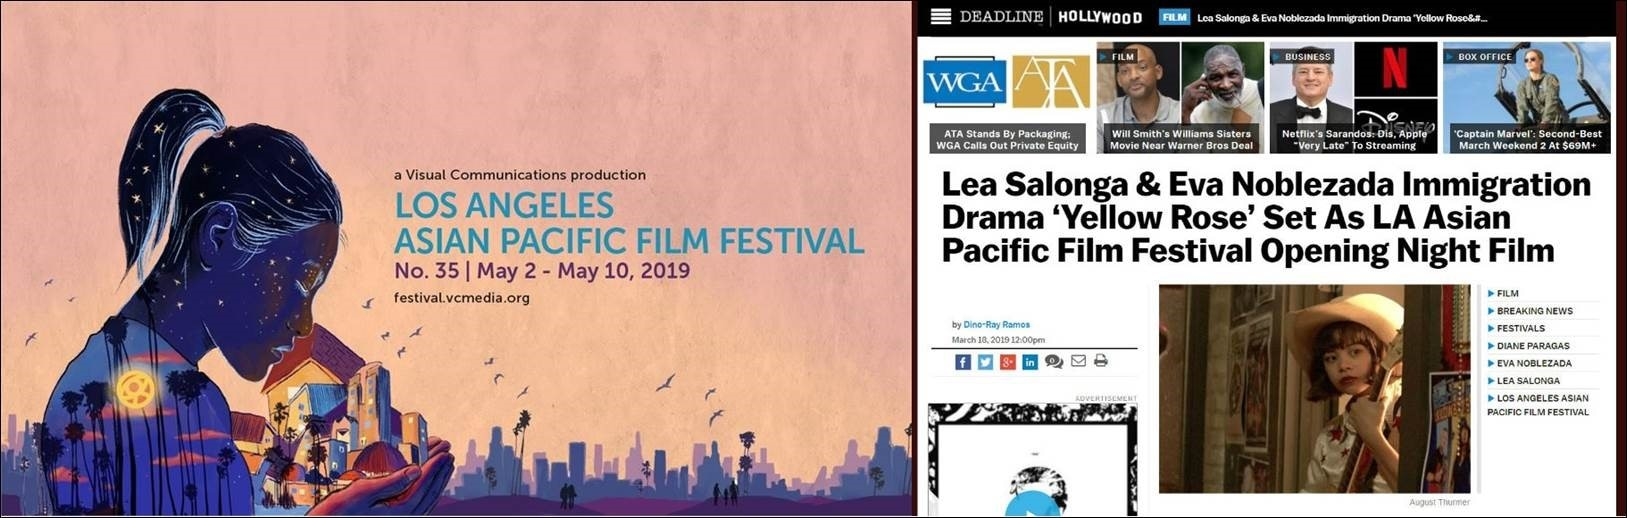 Photo credits  Los Angeles Asian Pacific Film Festival and Deadline com